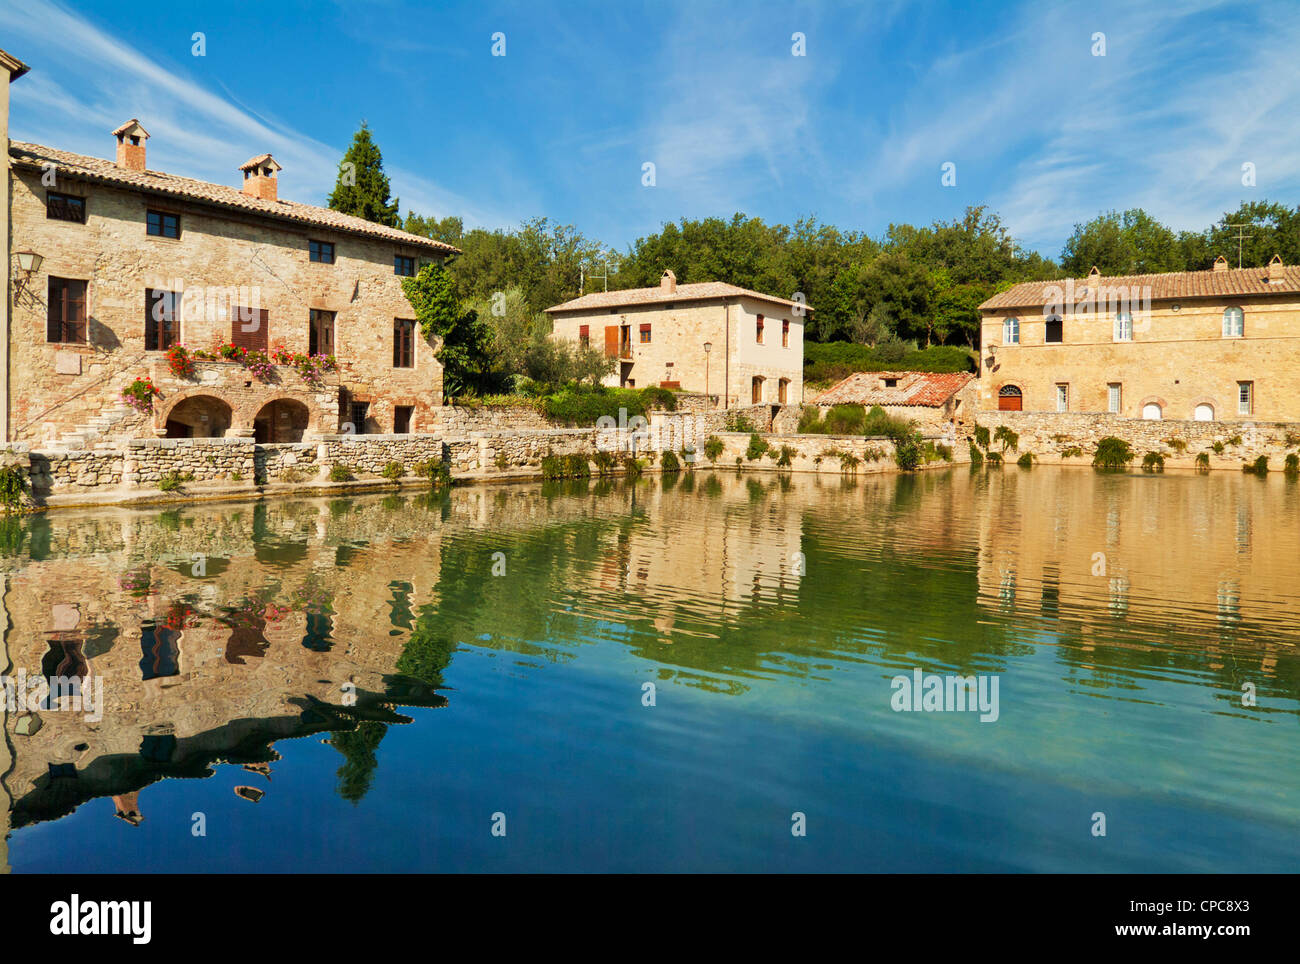 bagno vignoni piazza delle sorgenti a pool with natural hot spring val d orcia tuscany italy